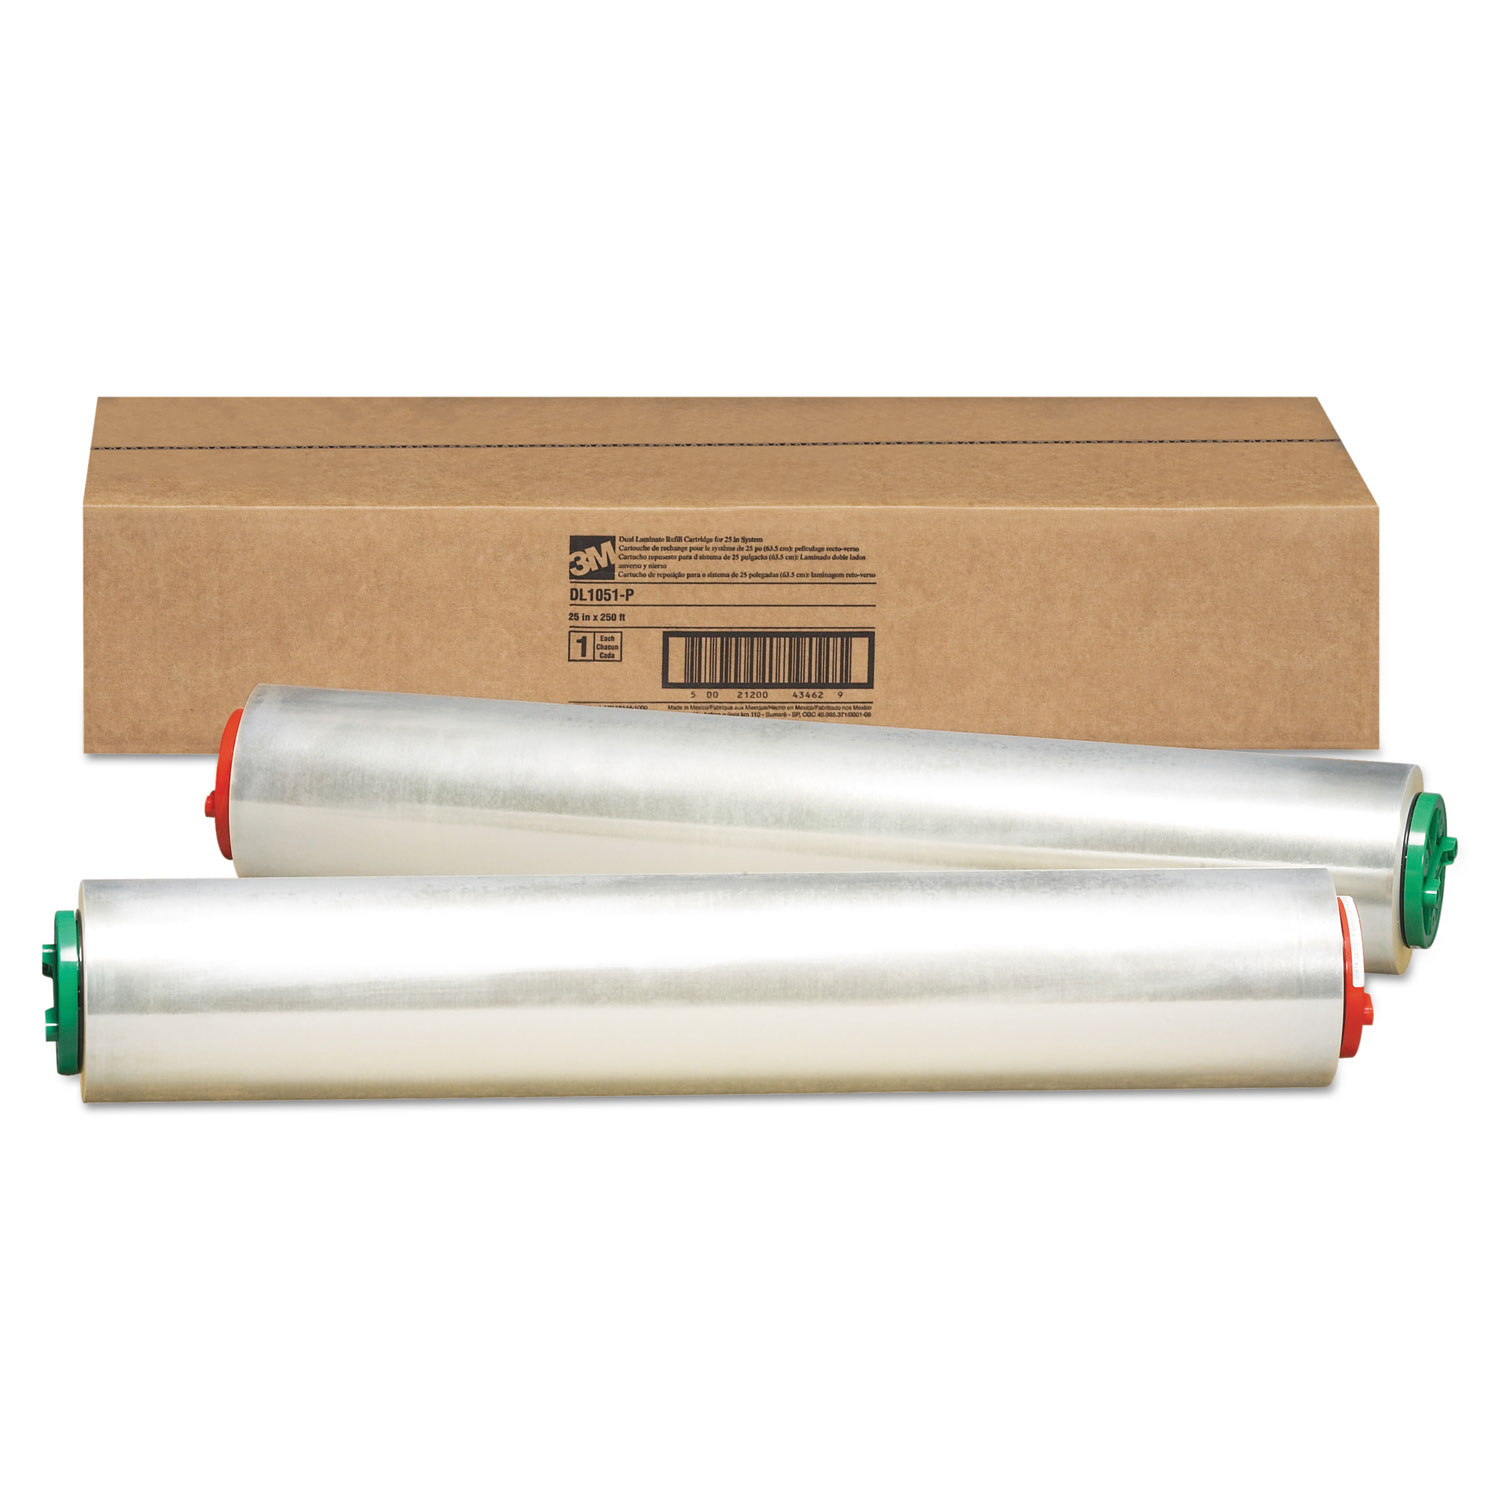 Refill Cartridge for Heat-Free Laminating Machines, 250 ft.